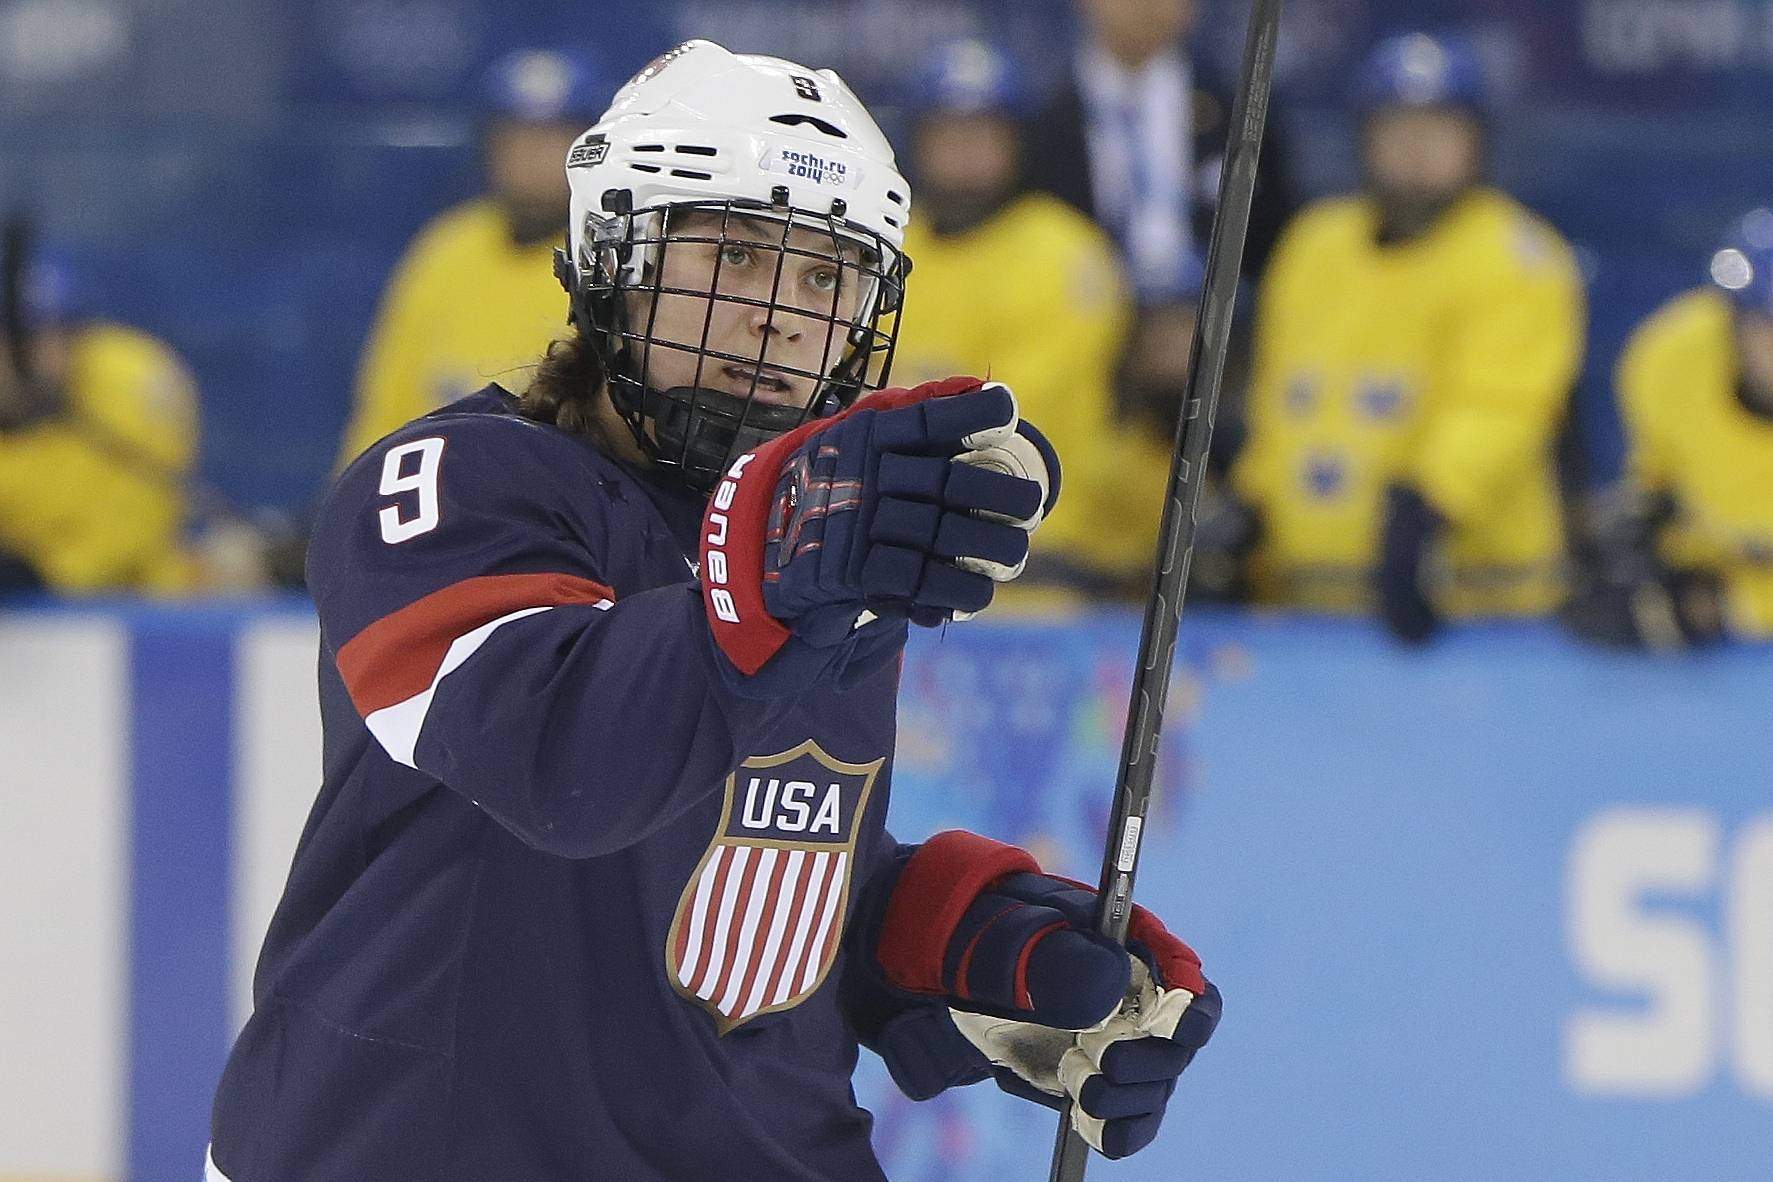 Megan Bozek of Buffalo Grove celebrates her goal against Sweden Monday during the second period of the 2014 Winter Olympics women's semifinal ice hockey game at Shayba Arena Monday in Sochi, Russia.